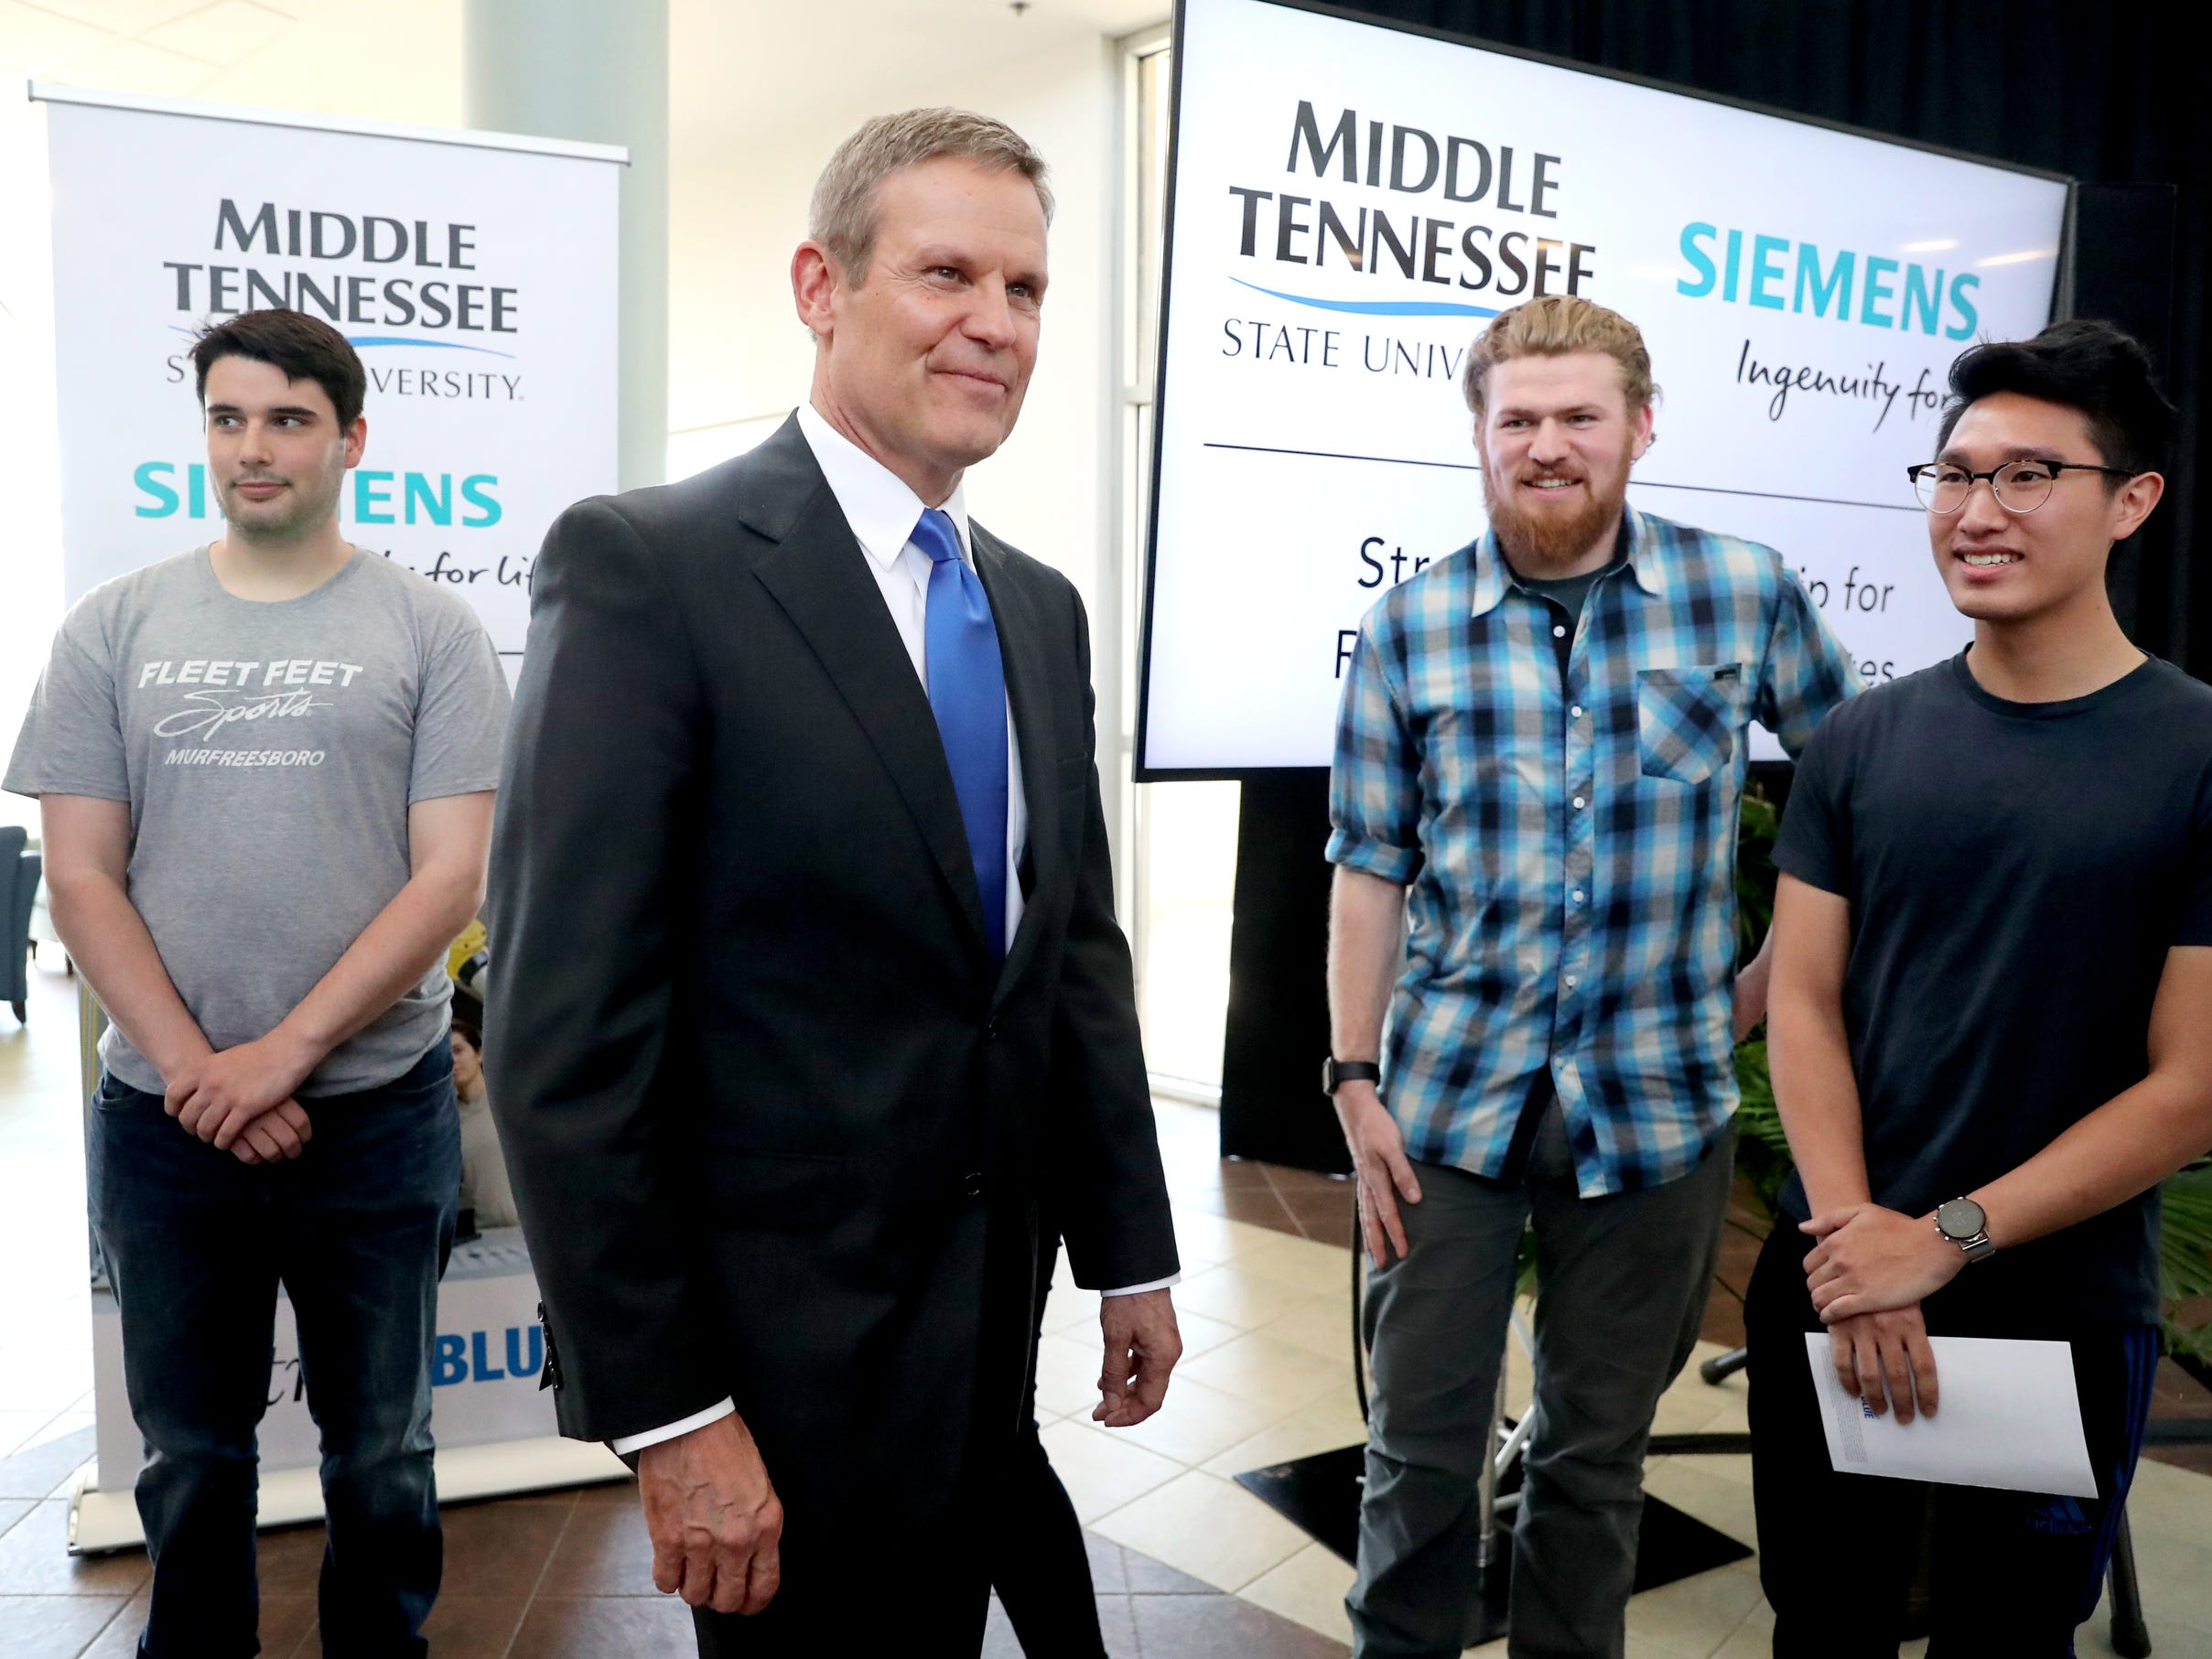 Tennessee Governor Bill Lee meets some of the MTSU Mechatronic students after speaking at the school's program recognizing the Siemens' grant to MTSU's Mechatronics Engineering program, on Wednesday April 3, 2019.